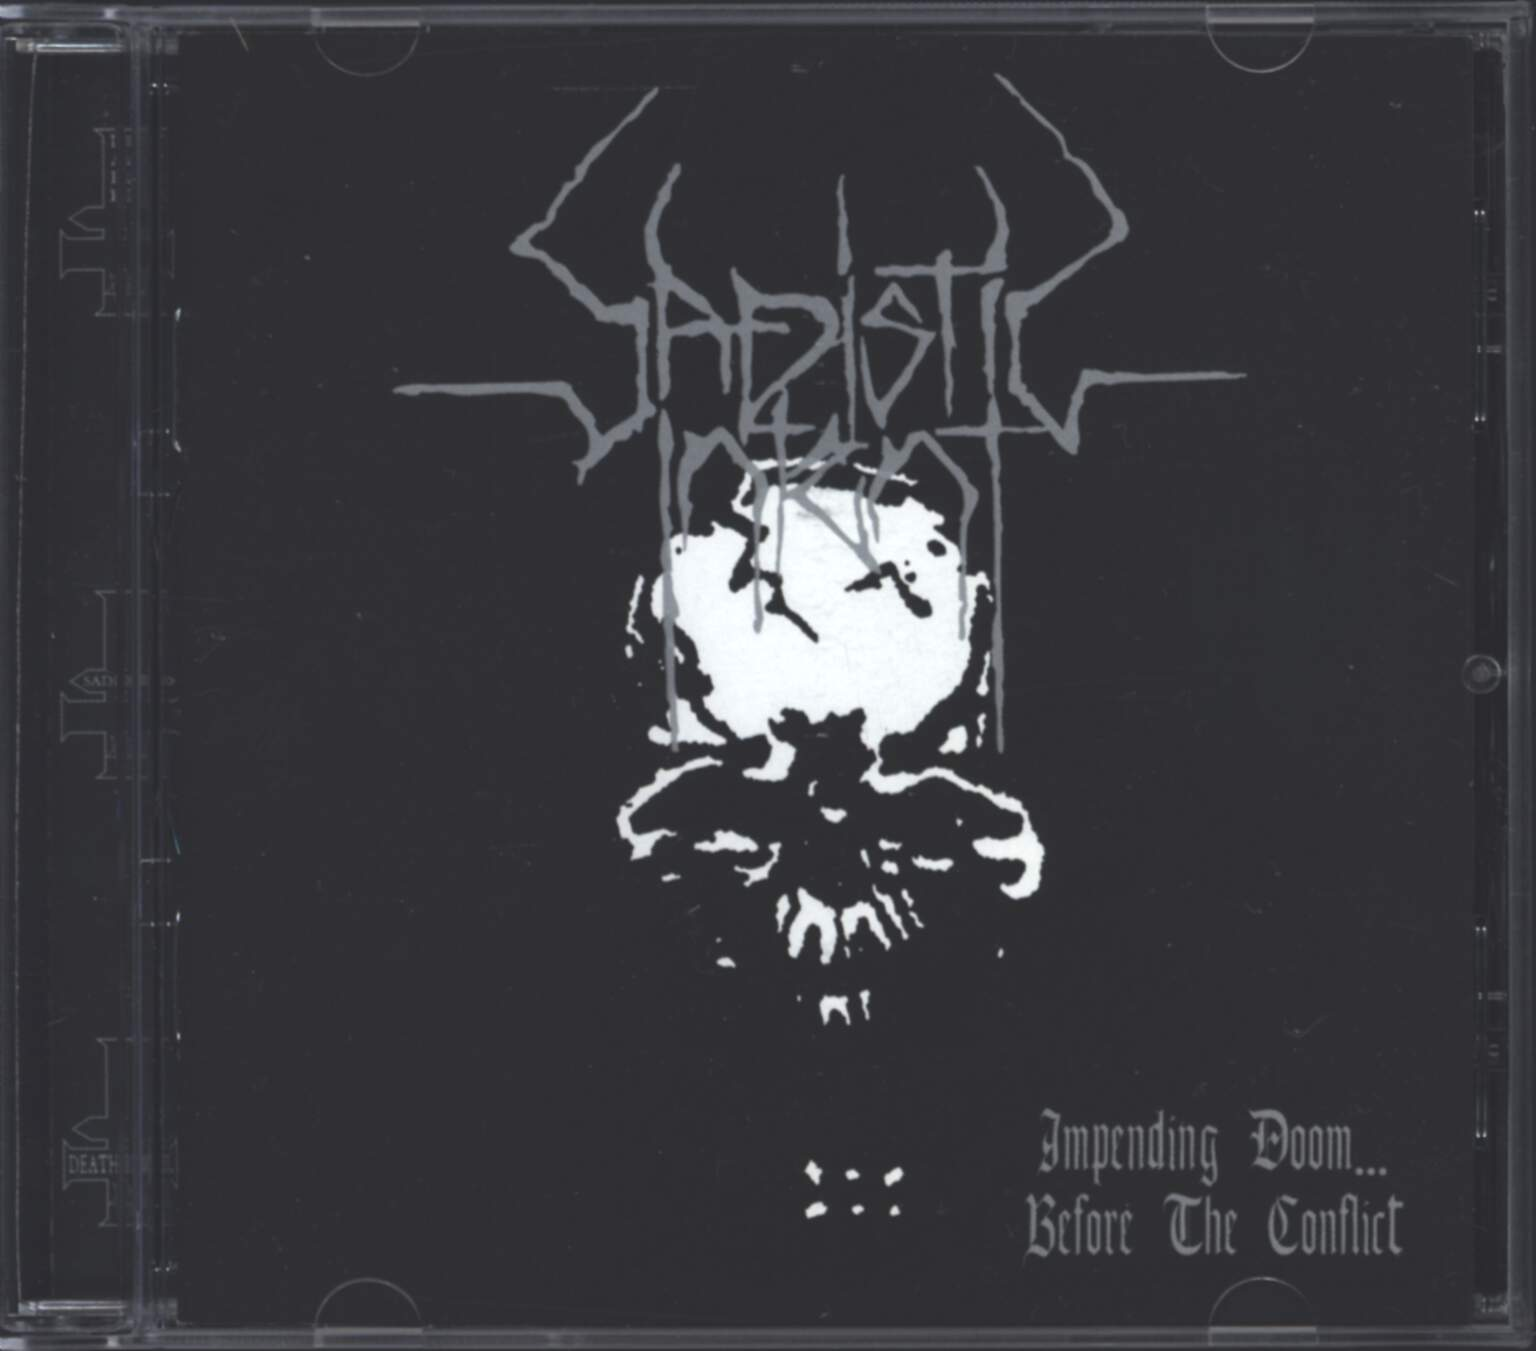 Sadistic Intent: Impending Doom... Before The Conflict, CD